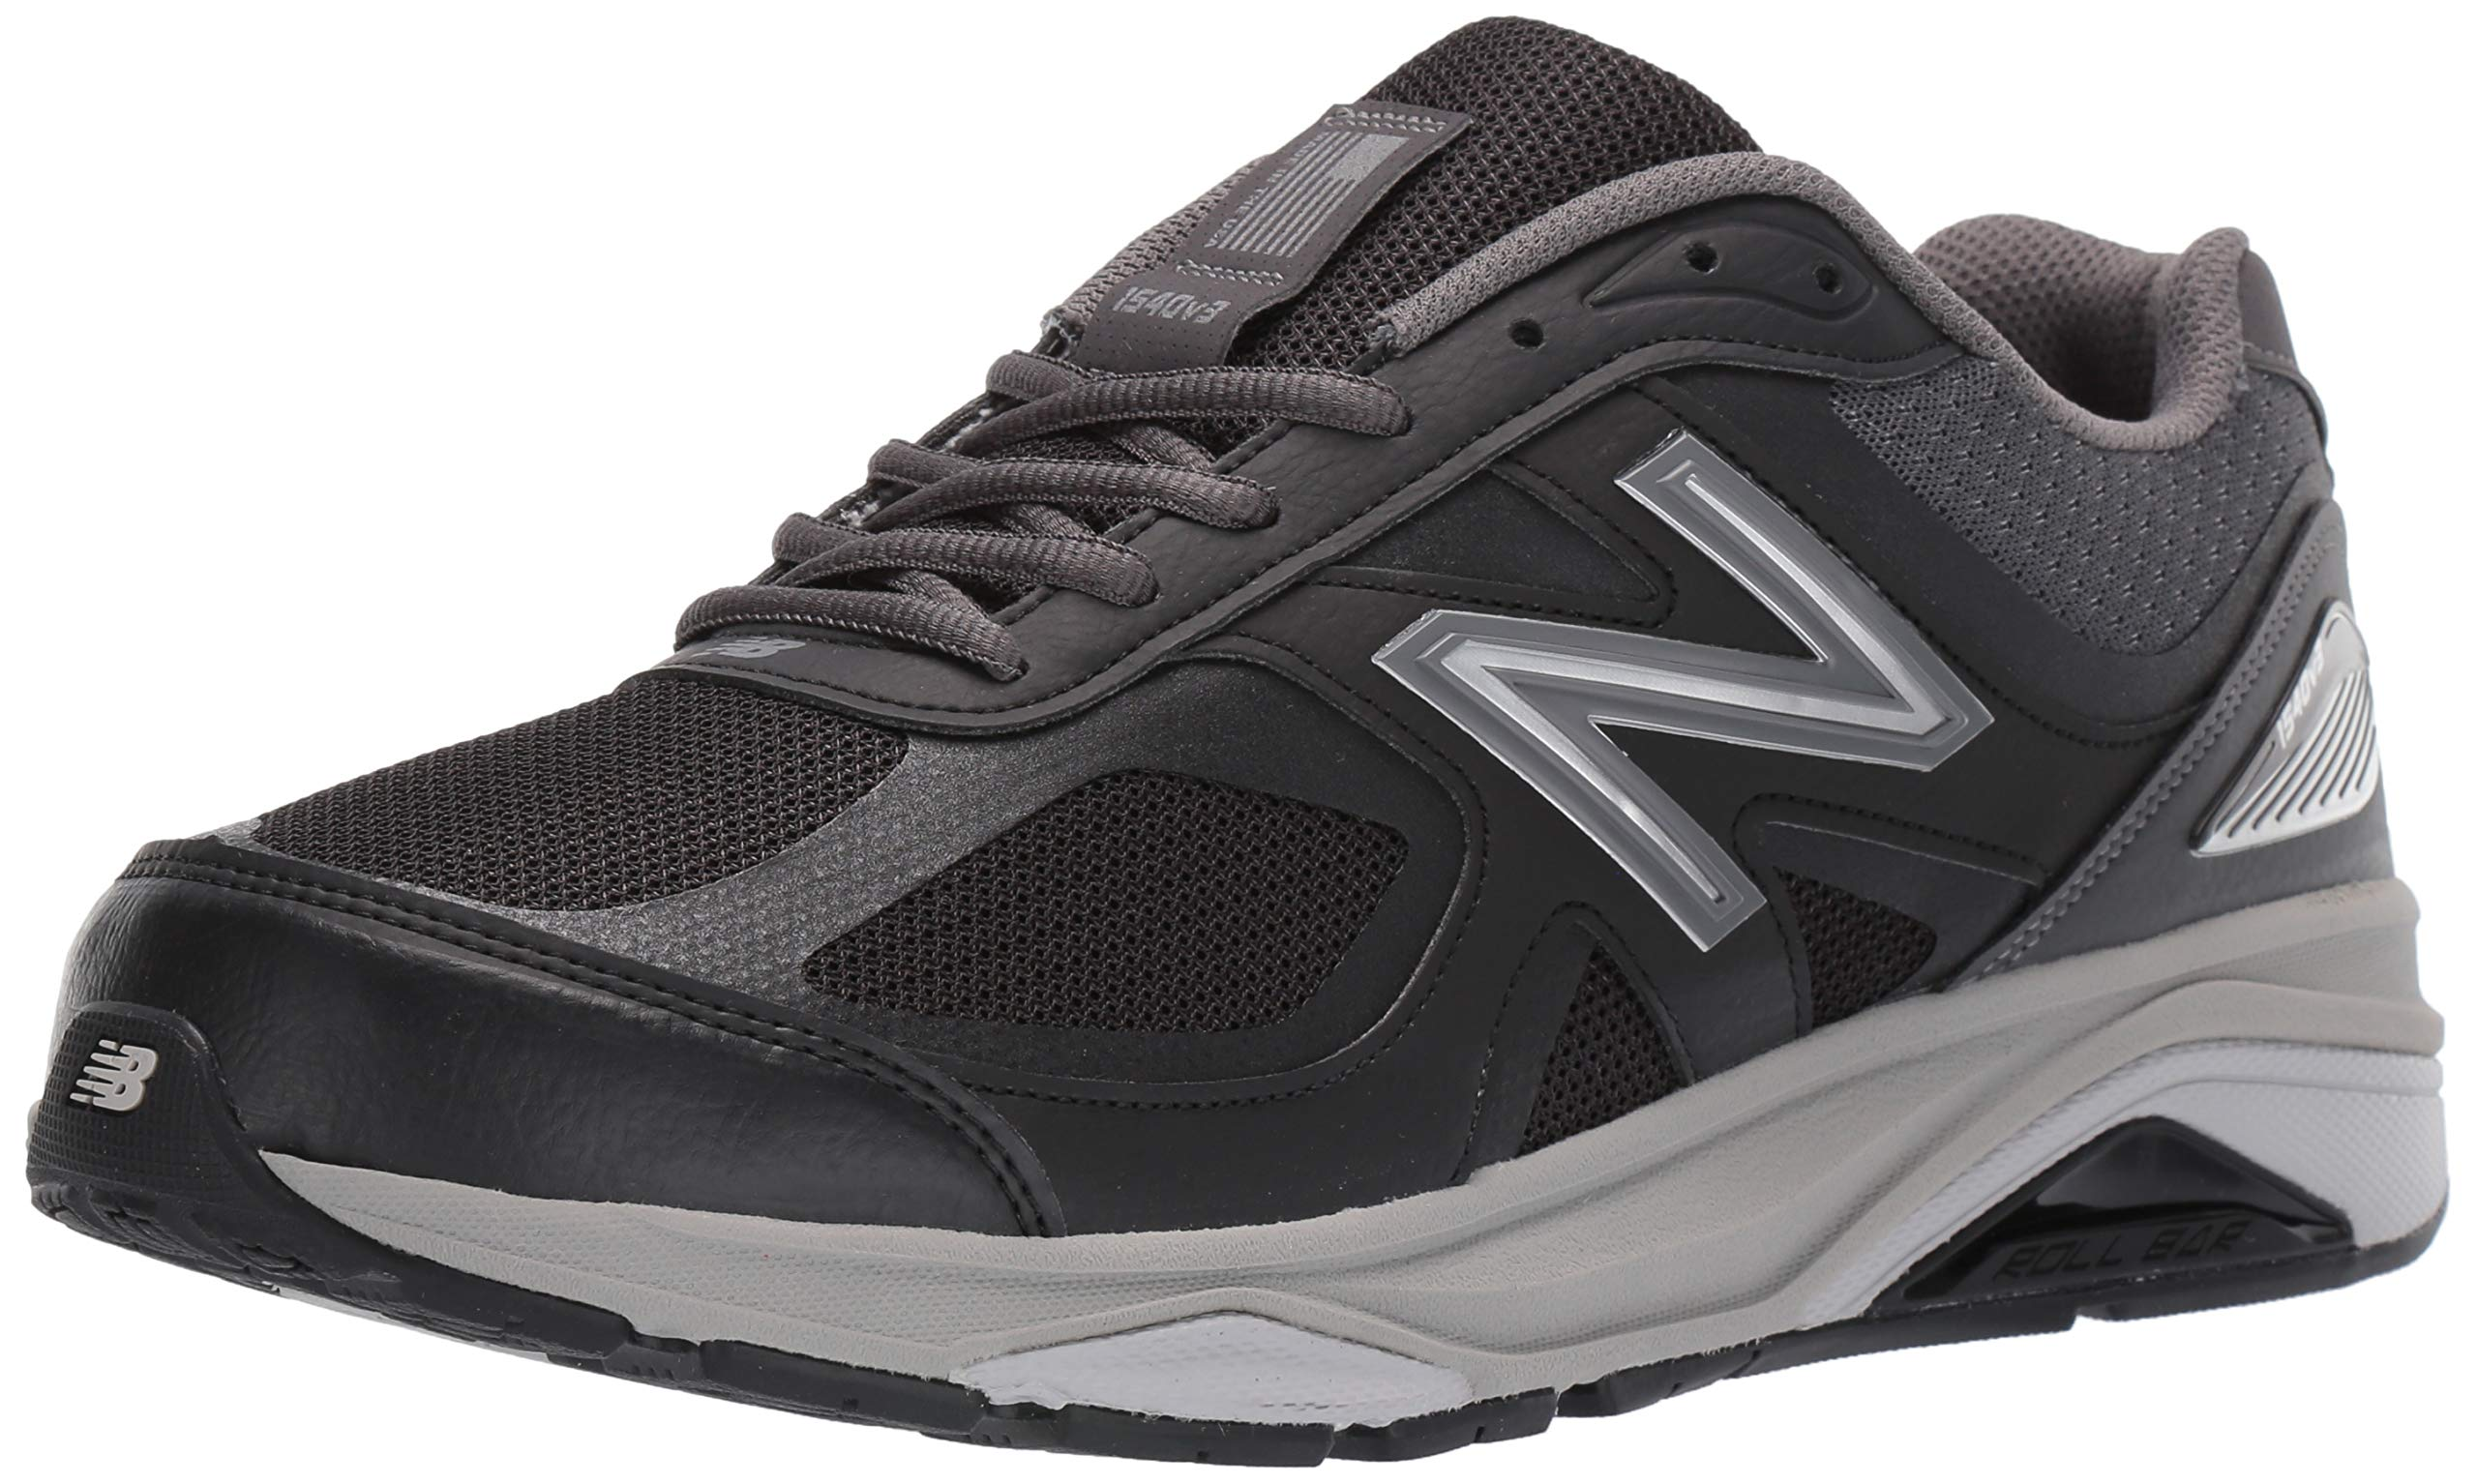 New Balance Men's 1540v3 Running Shoe, Black/Castlerock, 7 W US